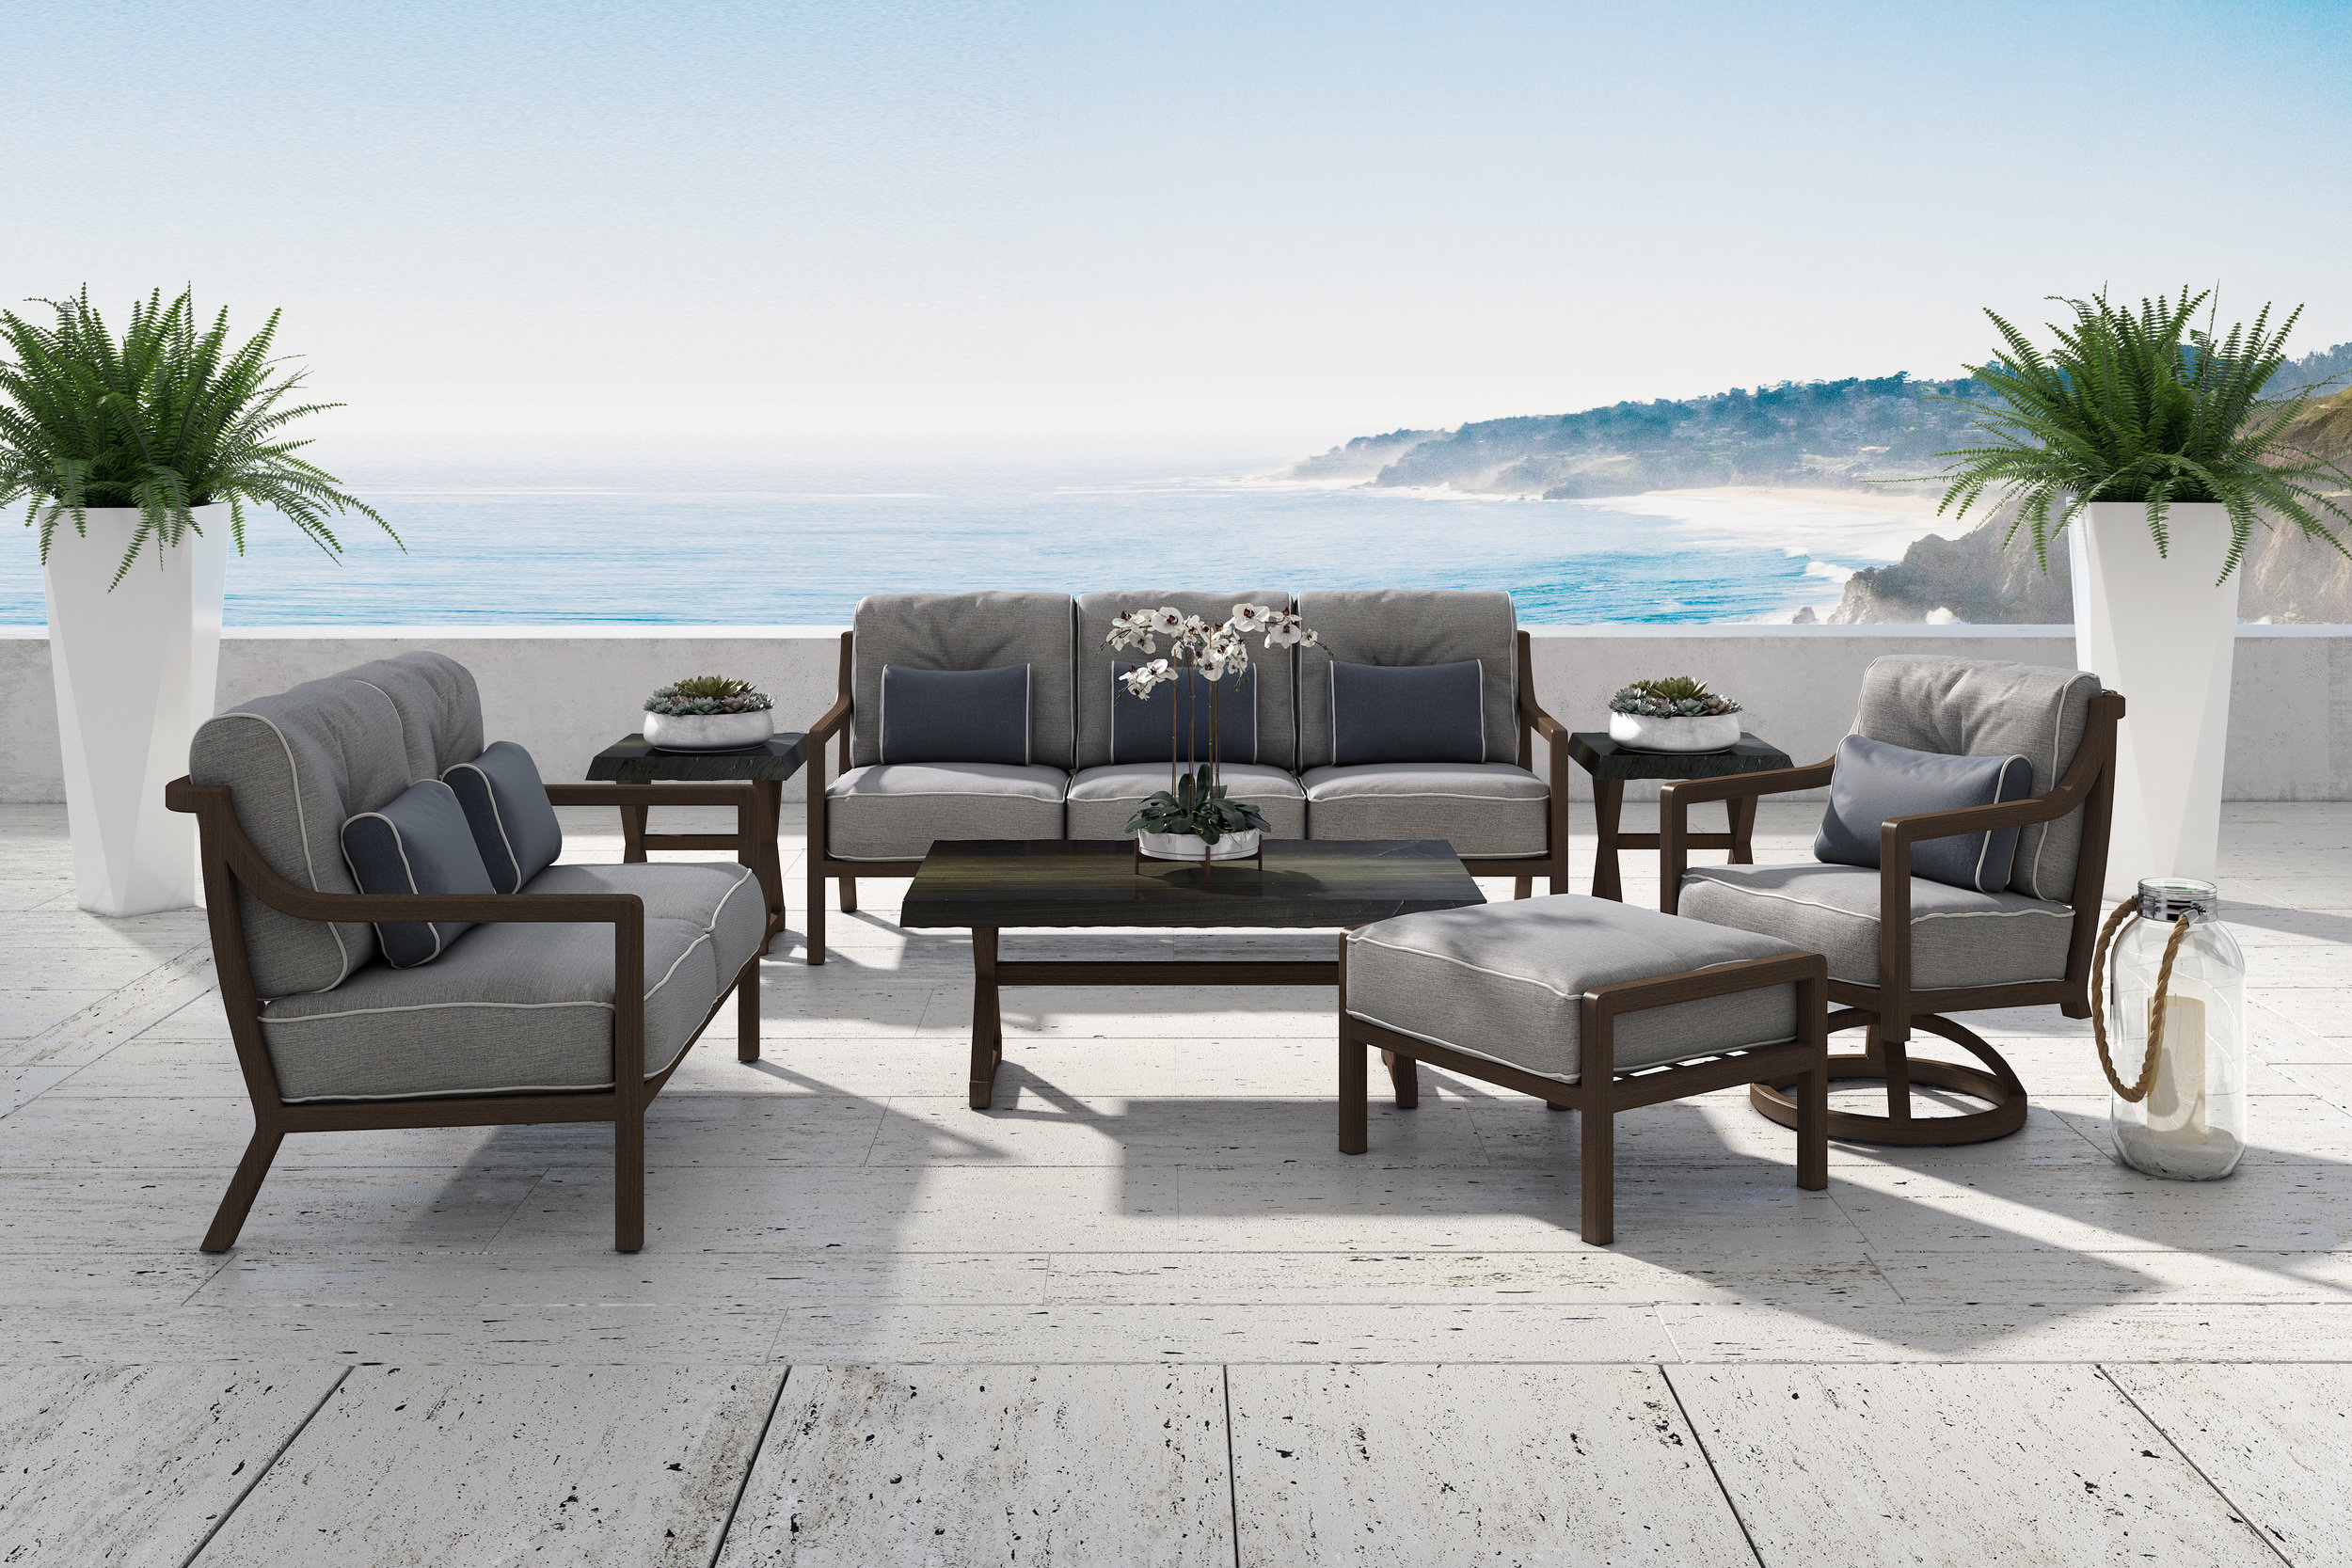 Ordinaire Outdoor Trends: Latest And Greatest